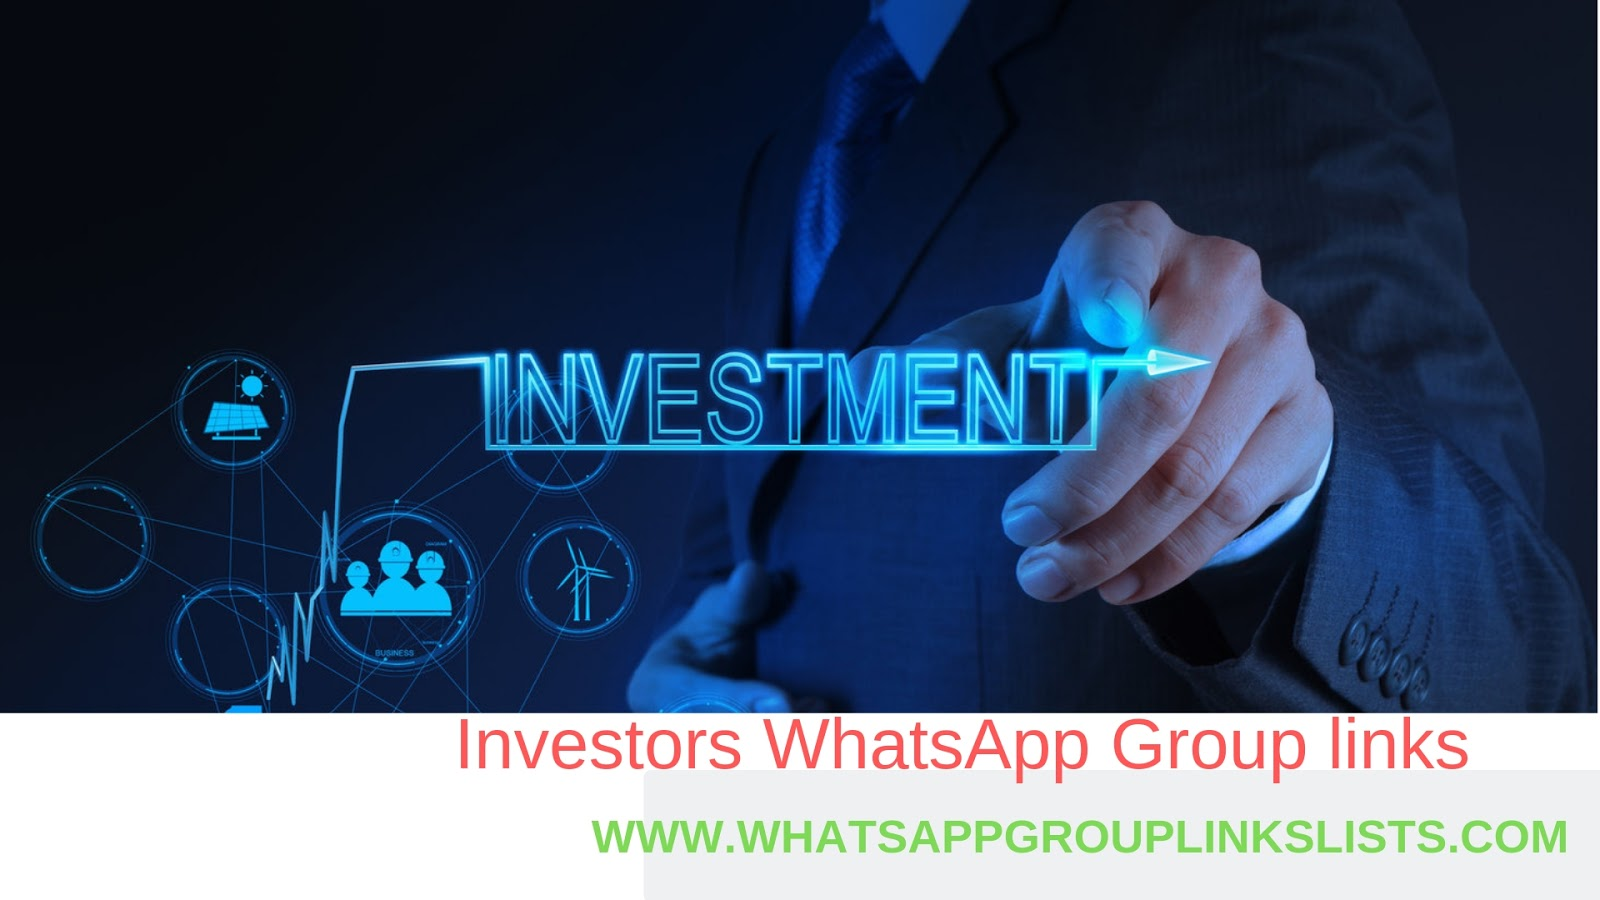 Join Investors WhatsApp Group Links List